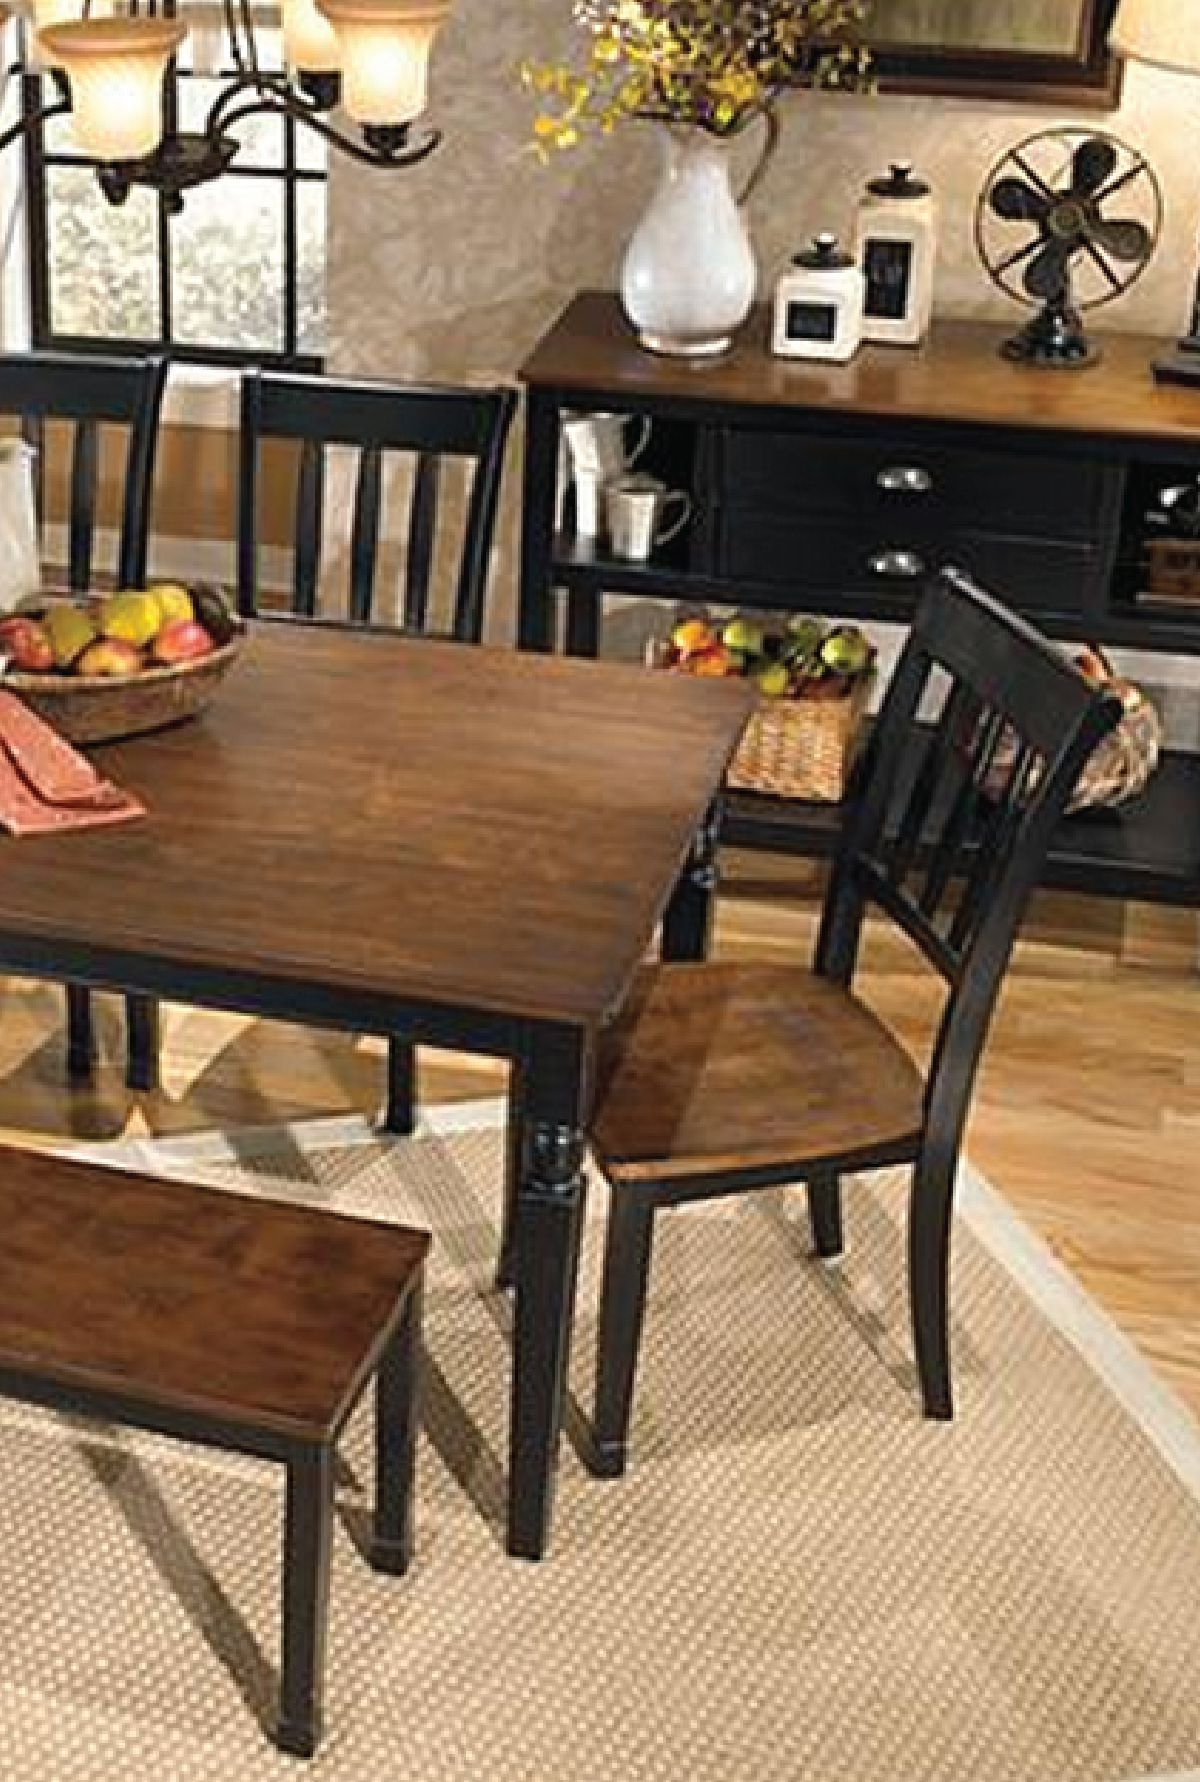 Distressed Walnut And Black Finish Wood Modern Country Dining Tables with 2020 This Farmhouse-Style Table Is An Elegant And Beautiful